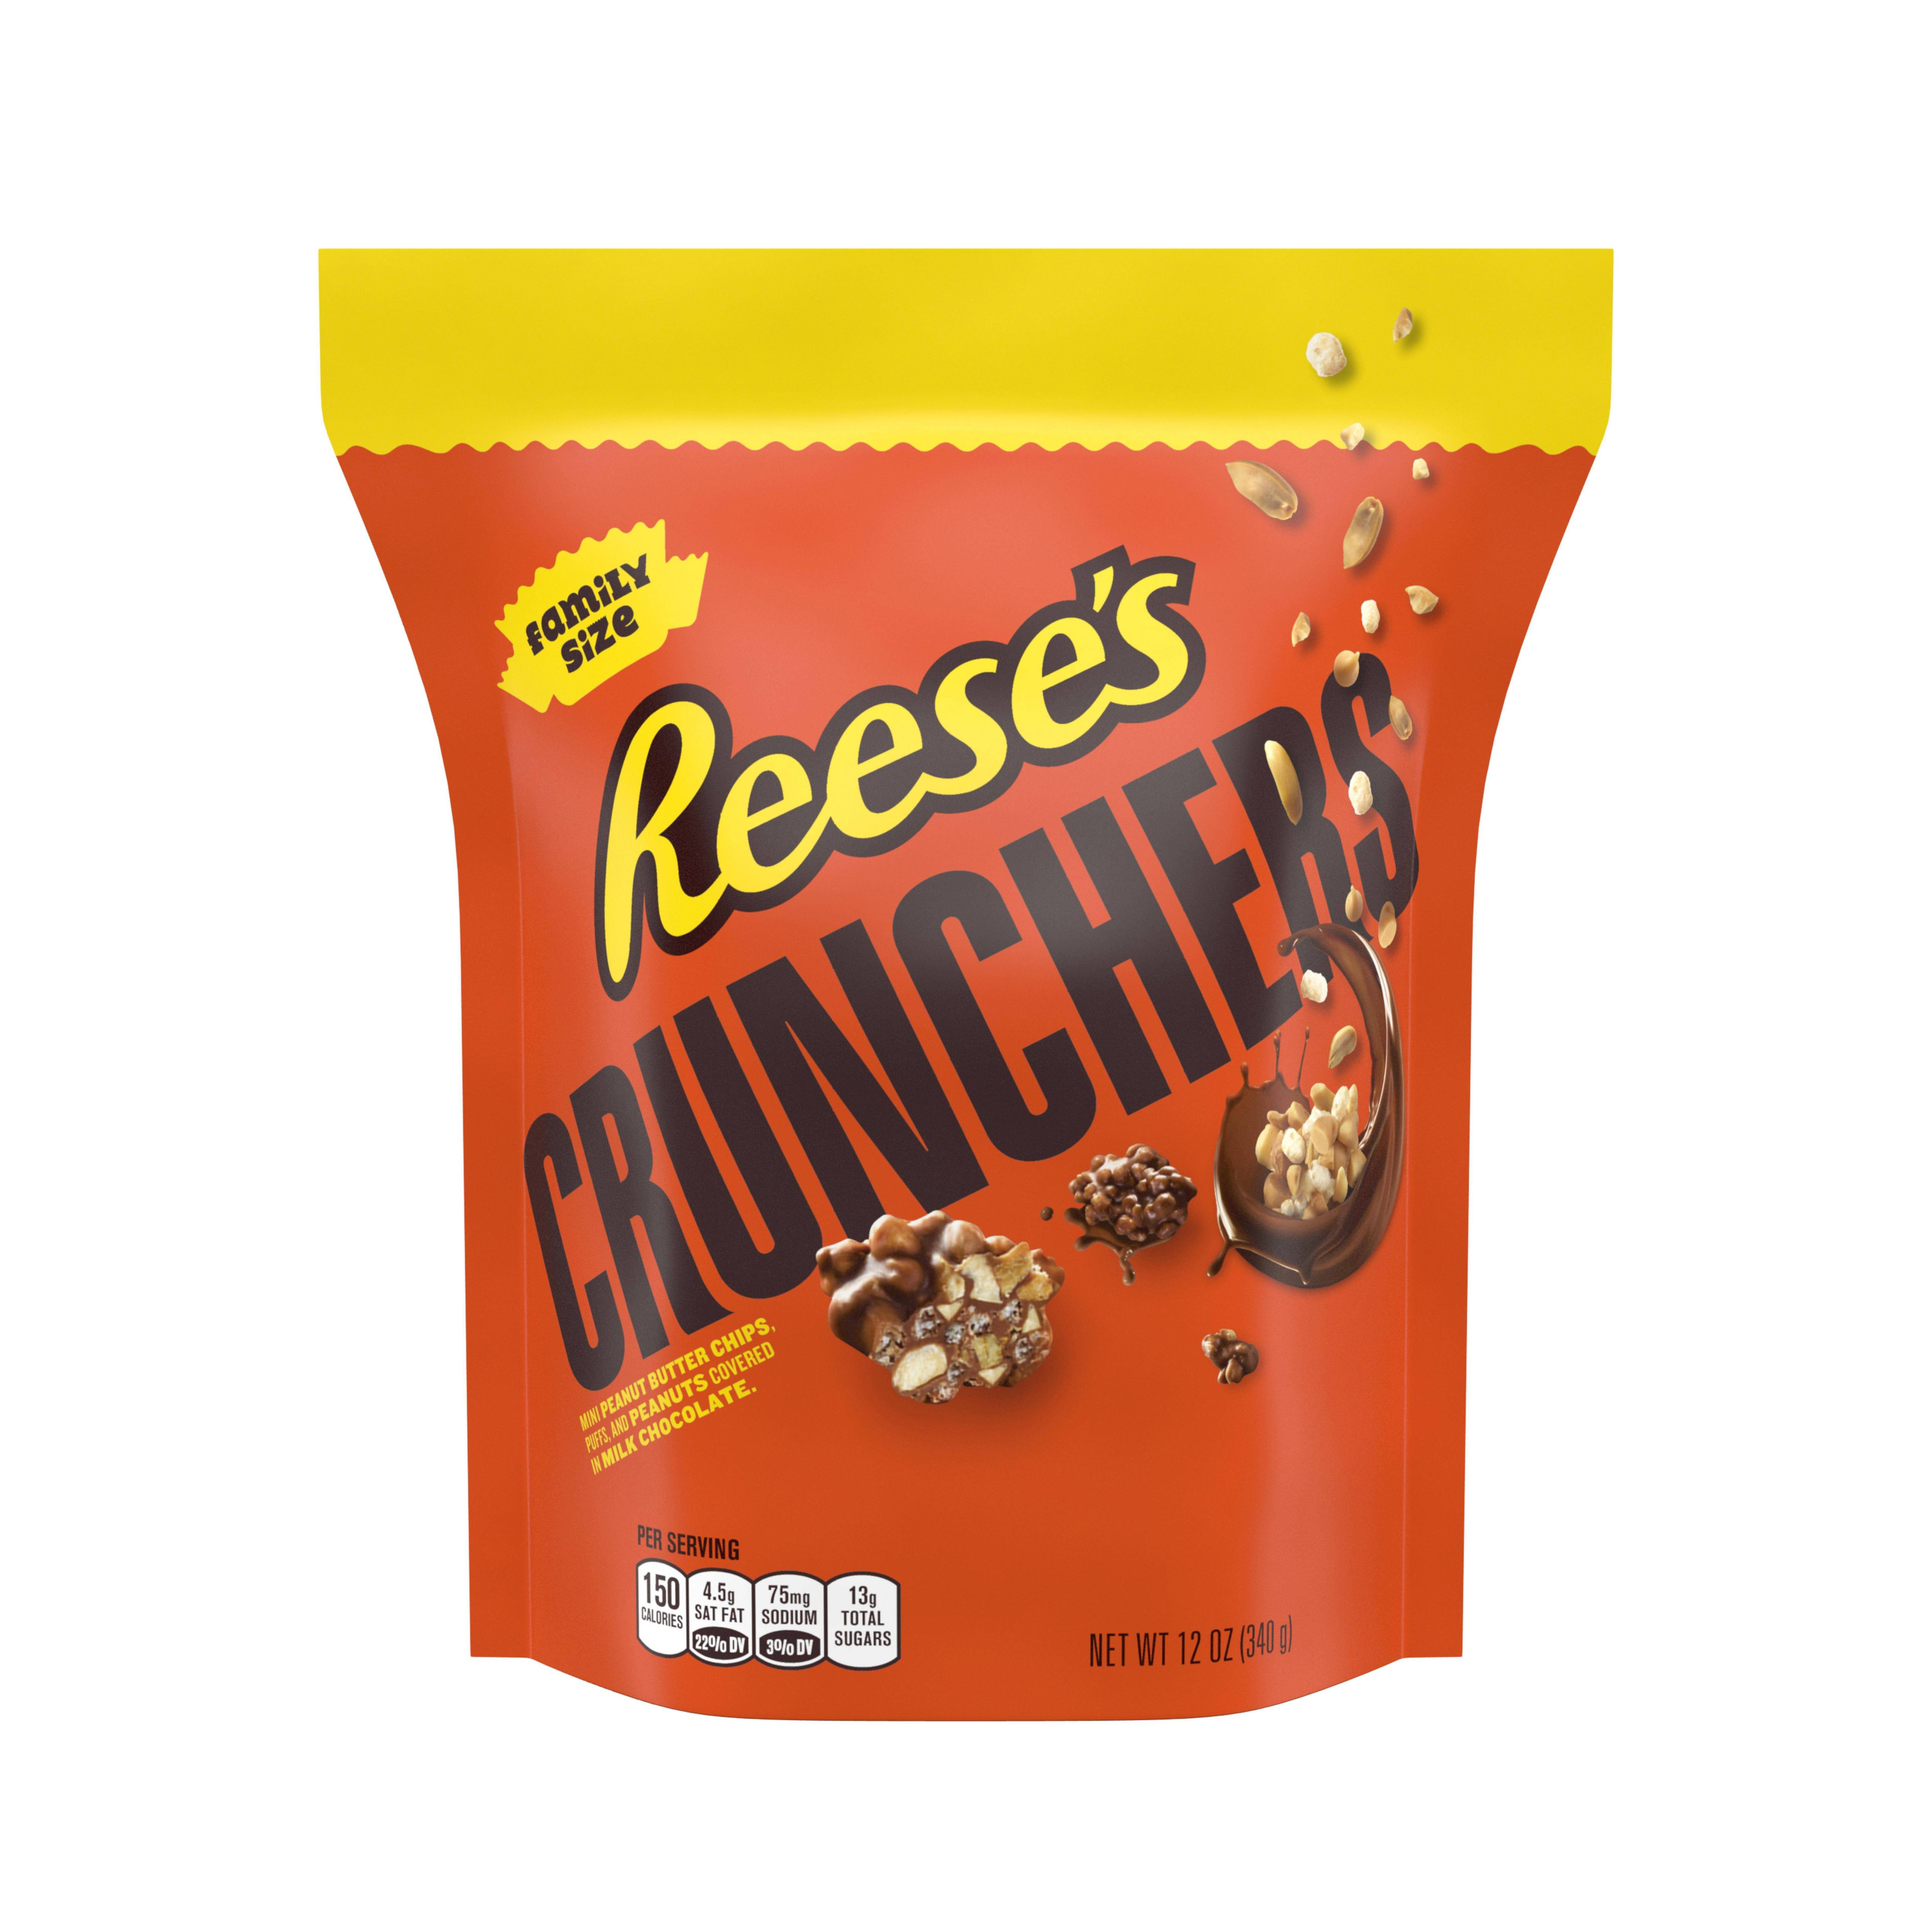 Reese's Crunchers Peanut Butter Chocolate Candy Snacks, 12 Oz.